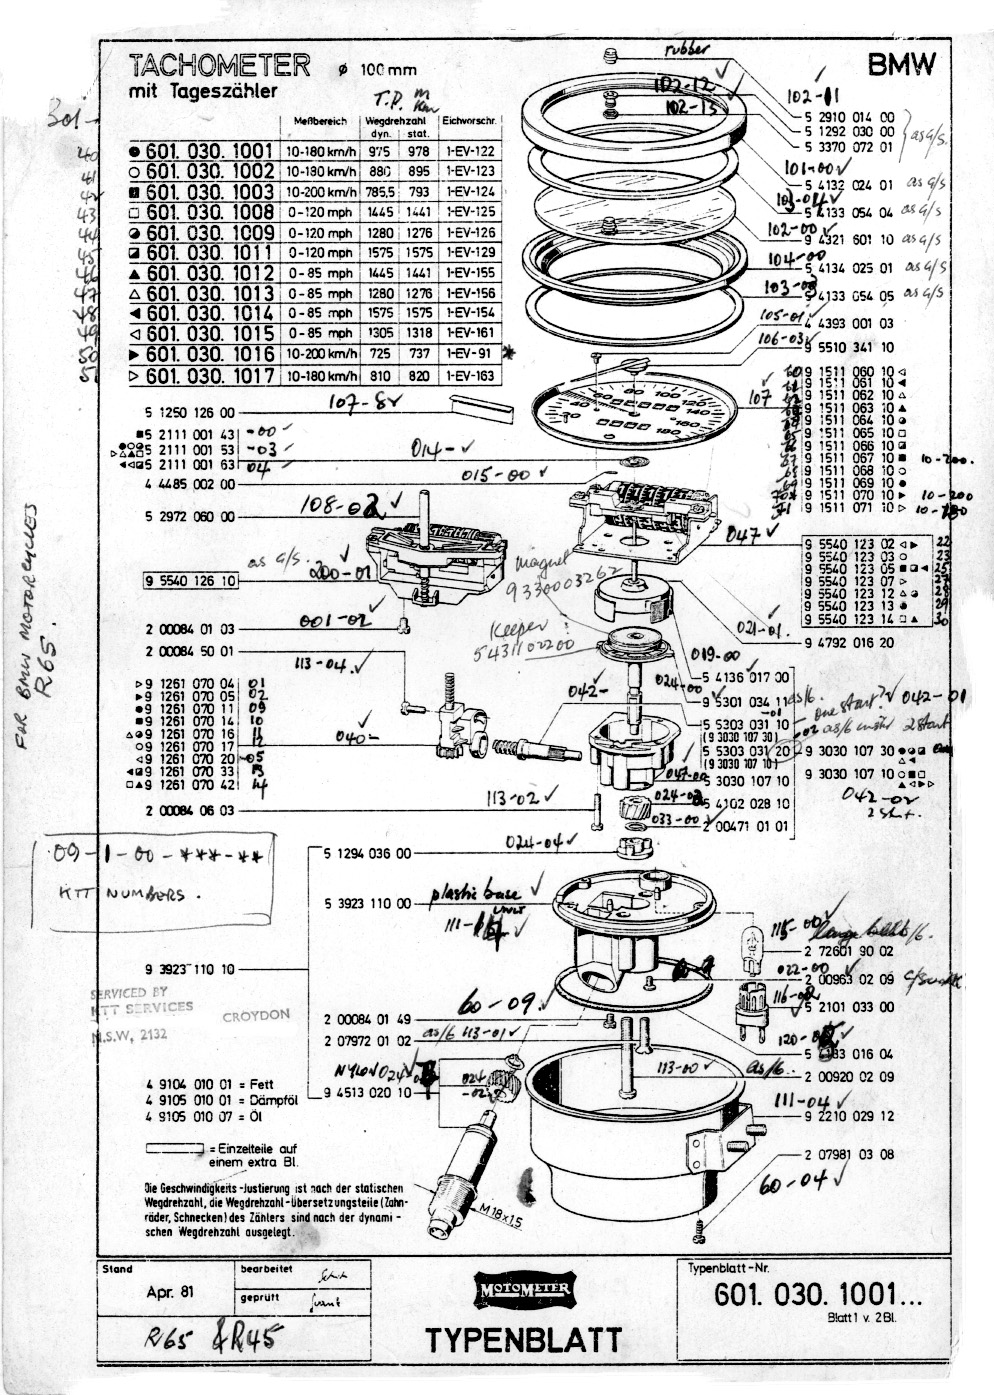 Smiths Electronic Speedometer Wiring Diagram Circuit Also In Addition Digital Comfortable Vdo Photos Electrical Rh